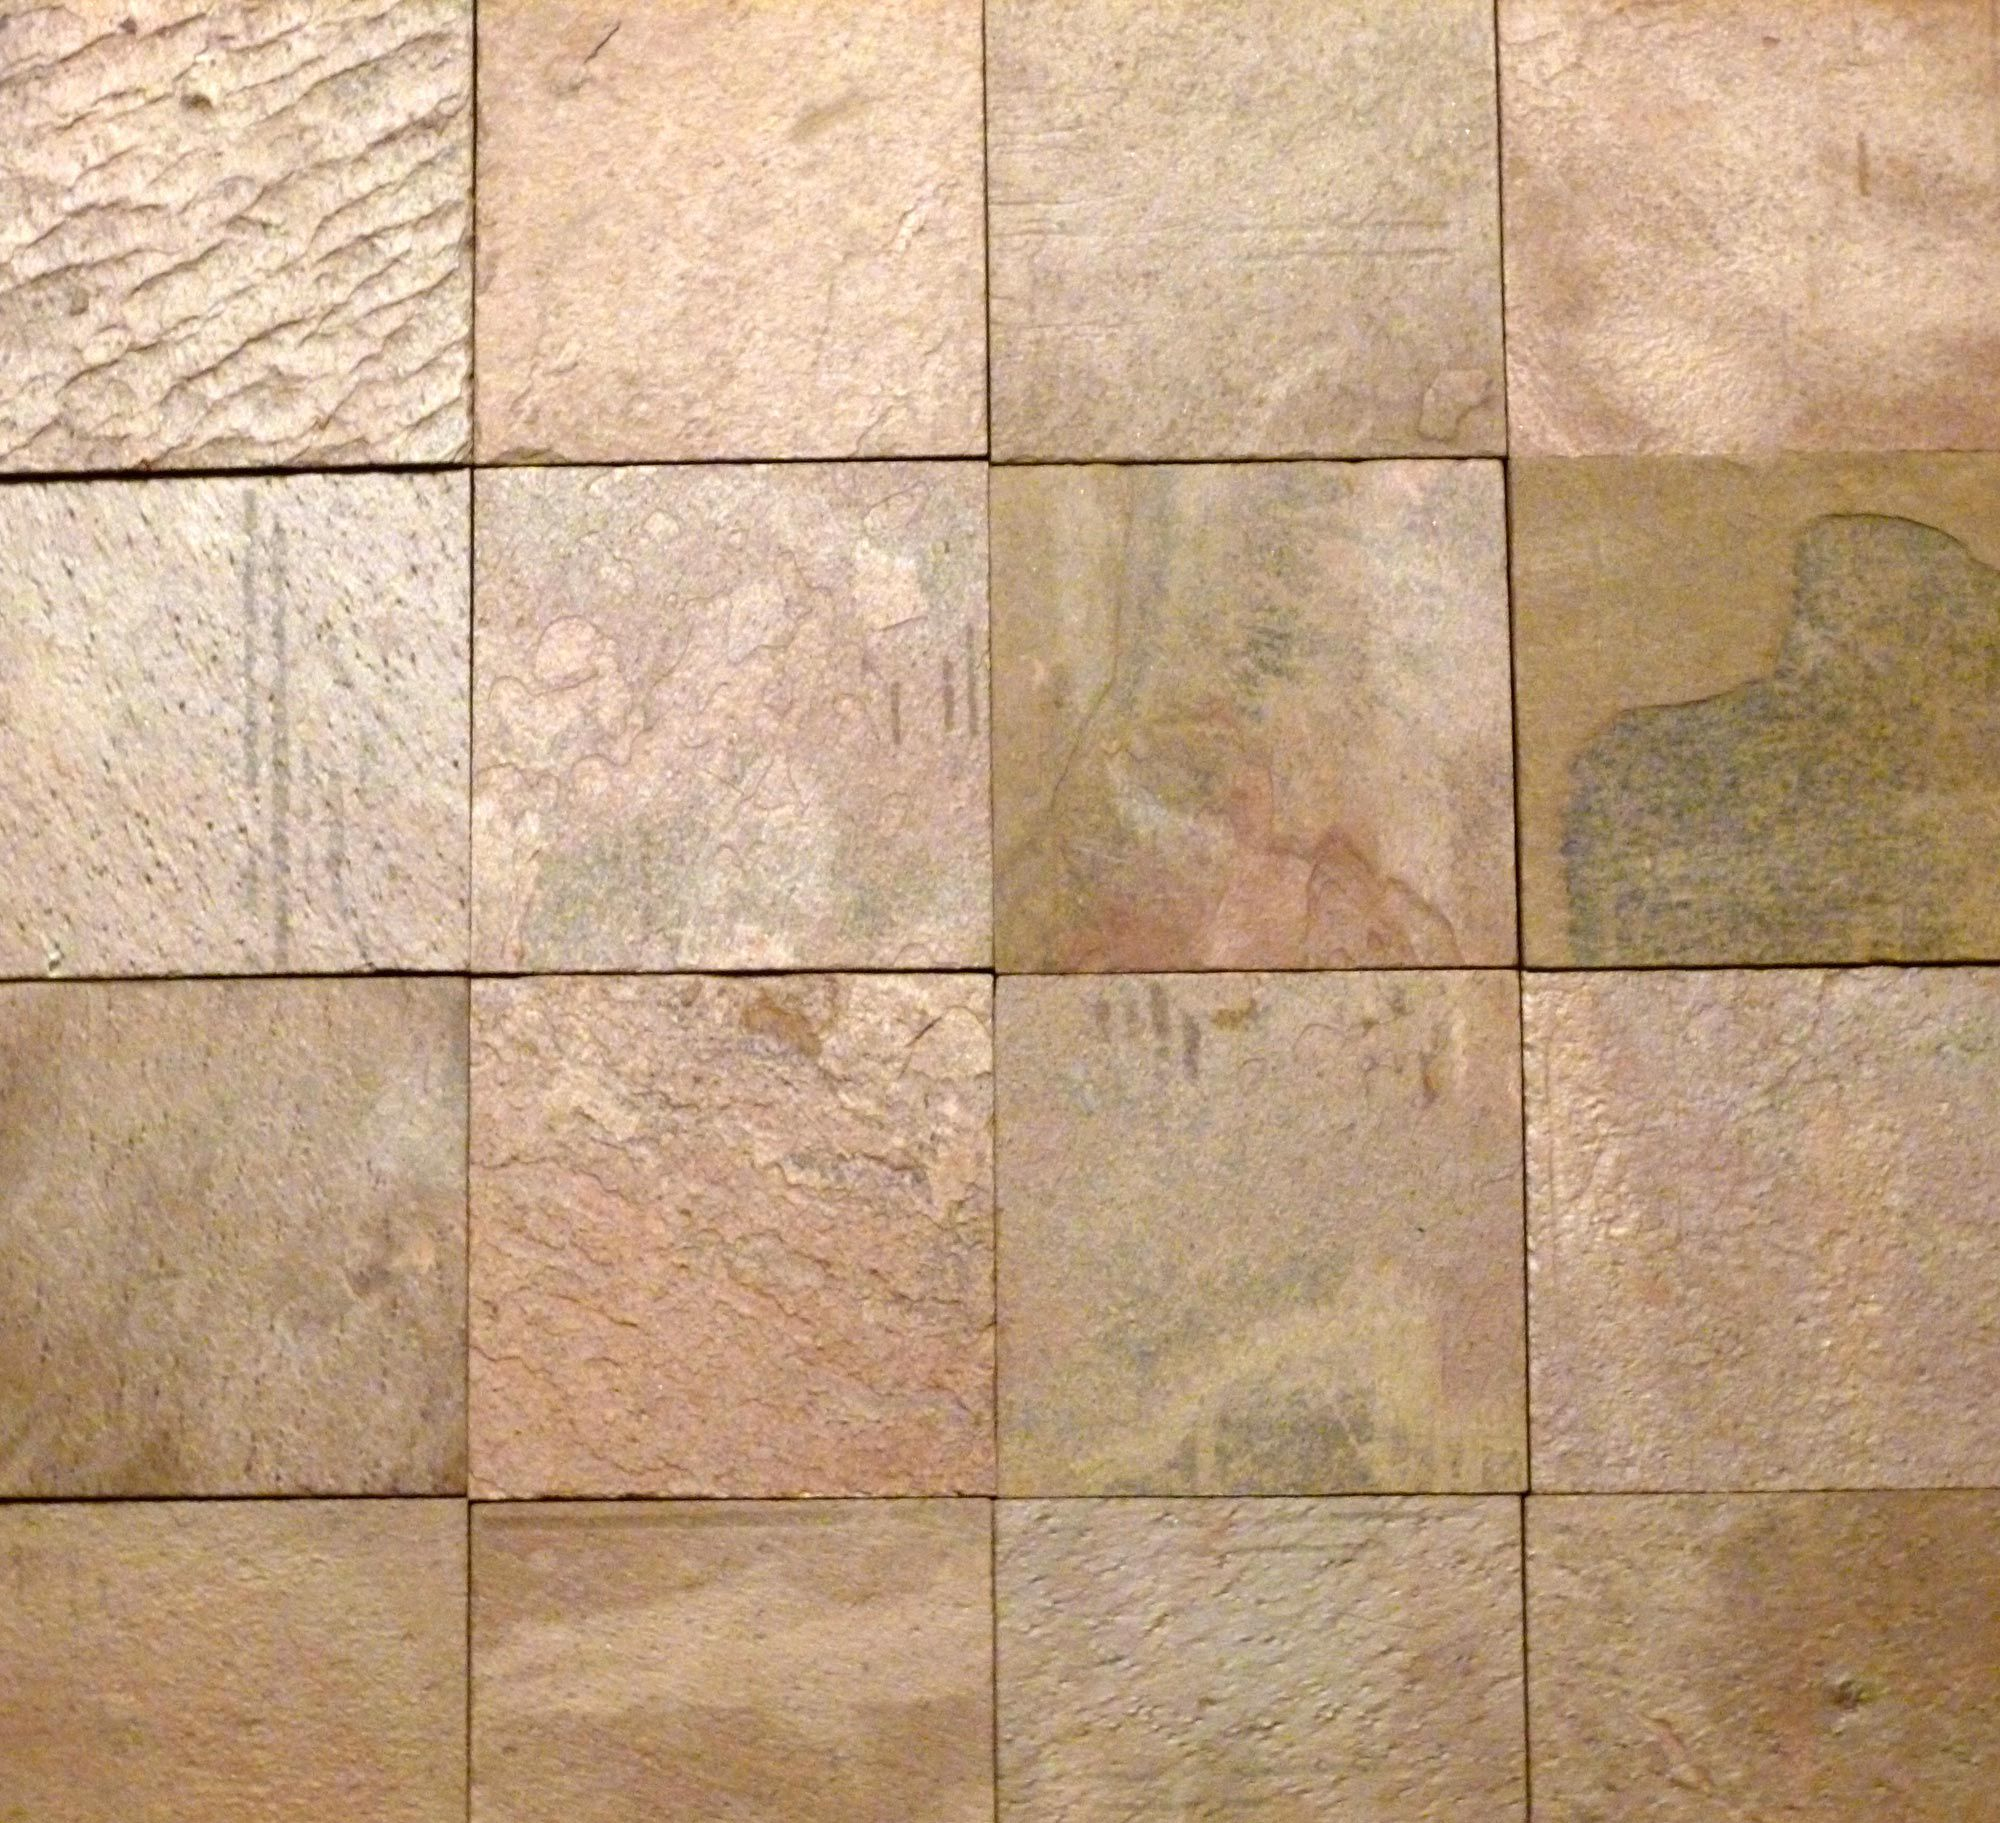 Natural stone and ceramic hard tile compared natural stone versus brick paver flooring dailygadgetfo Gallery